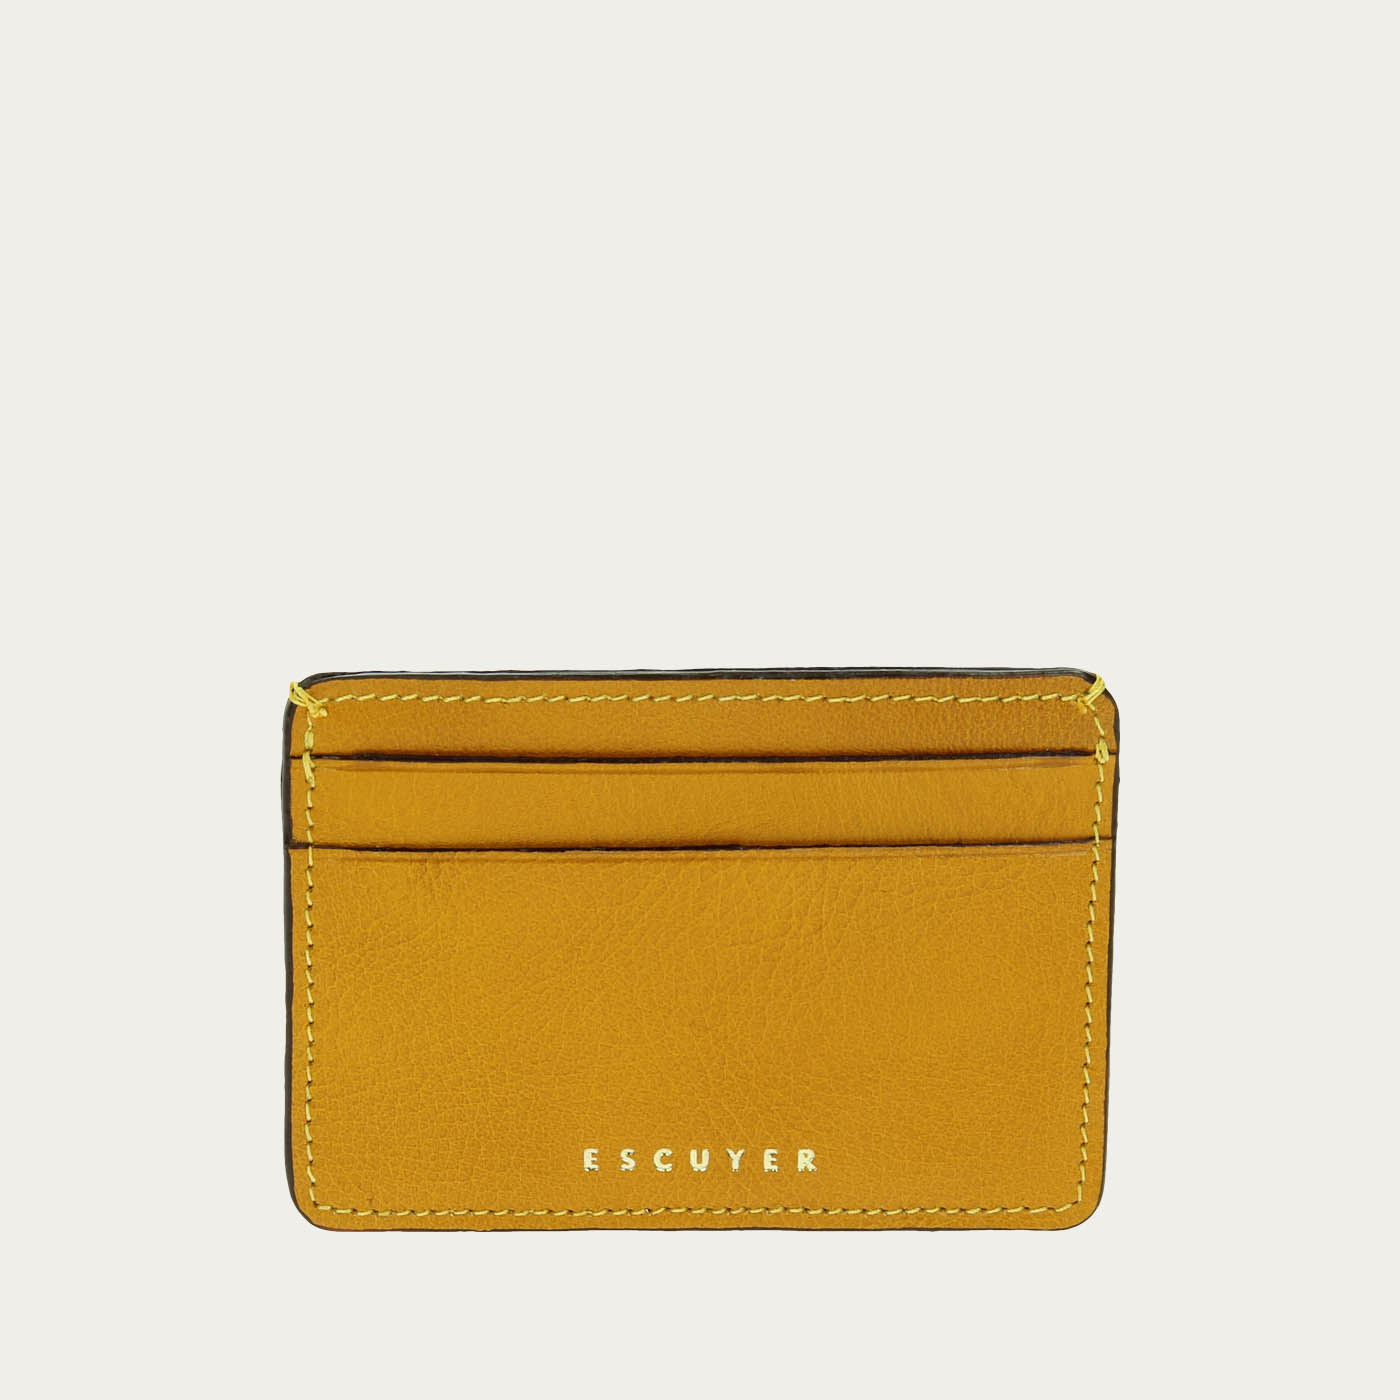 5c66ef20a9 Escuyer | Yellow Leather Cardholder